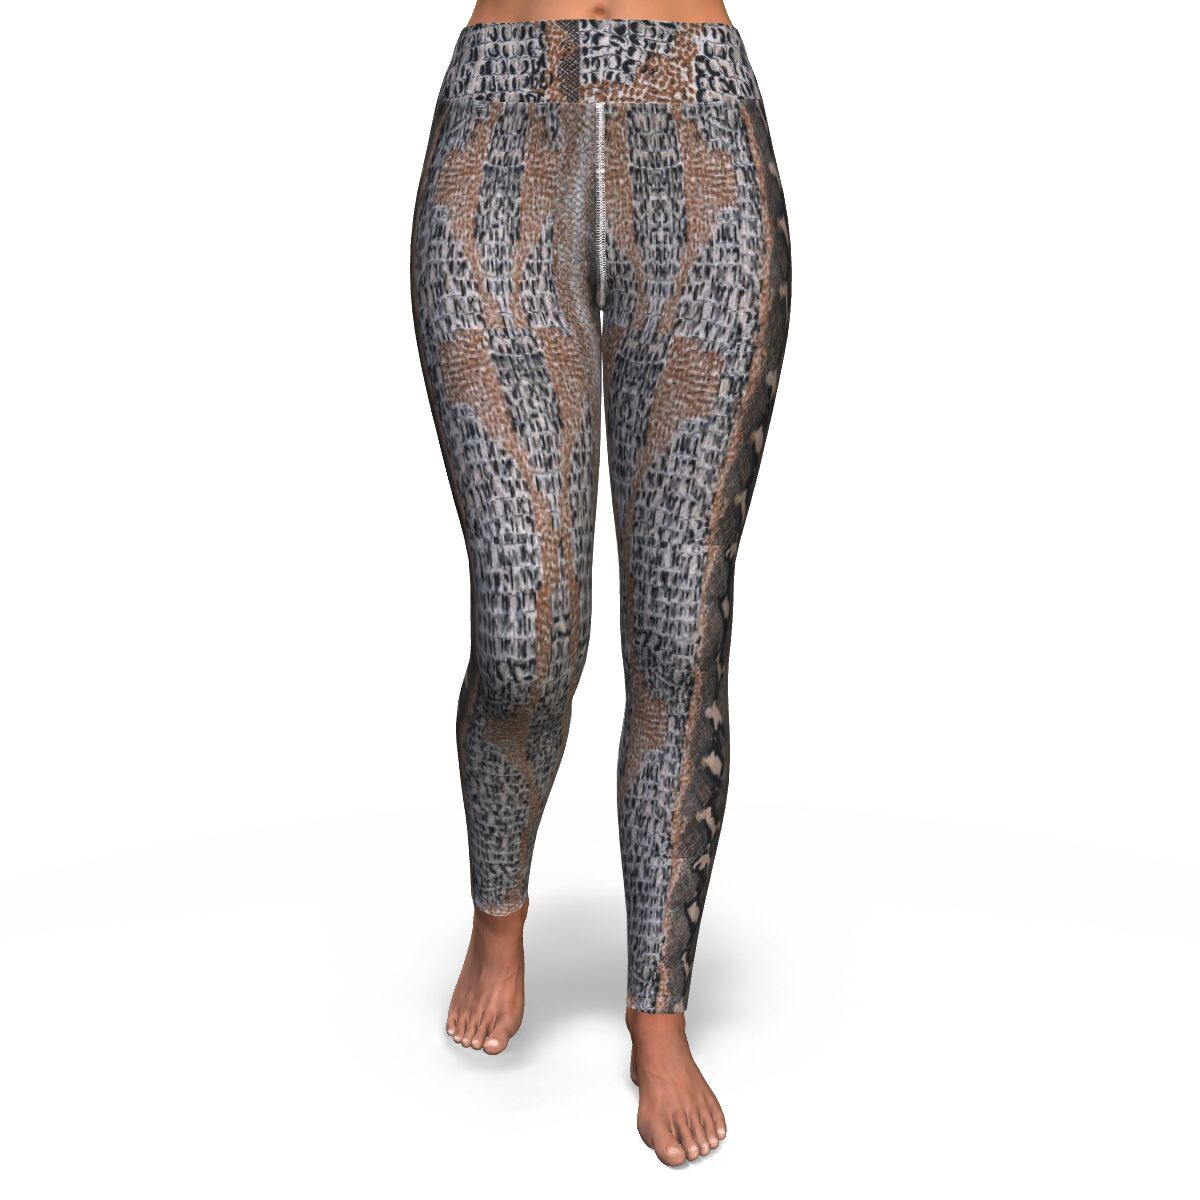 Snake Skin Yoga Leggings